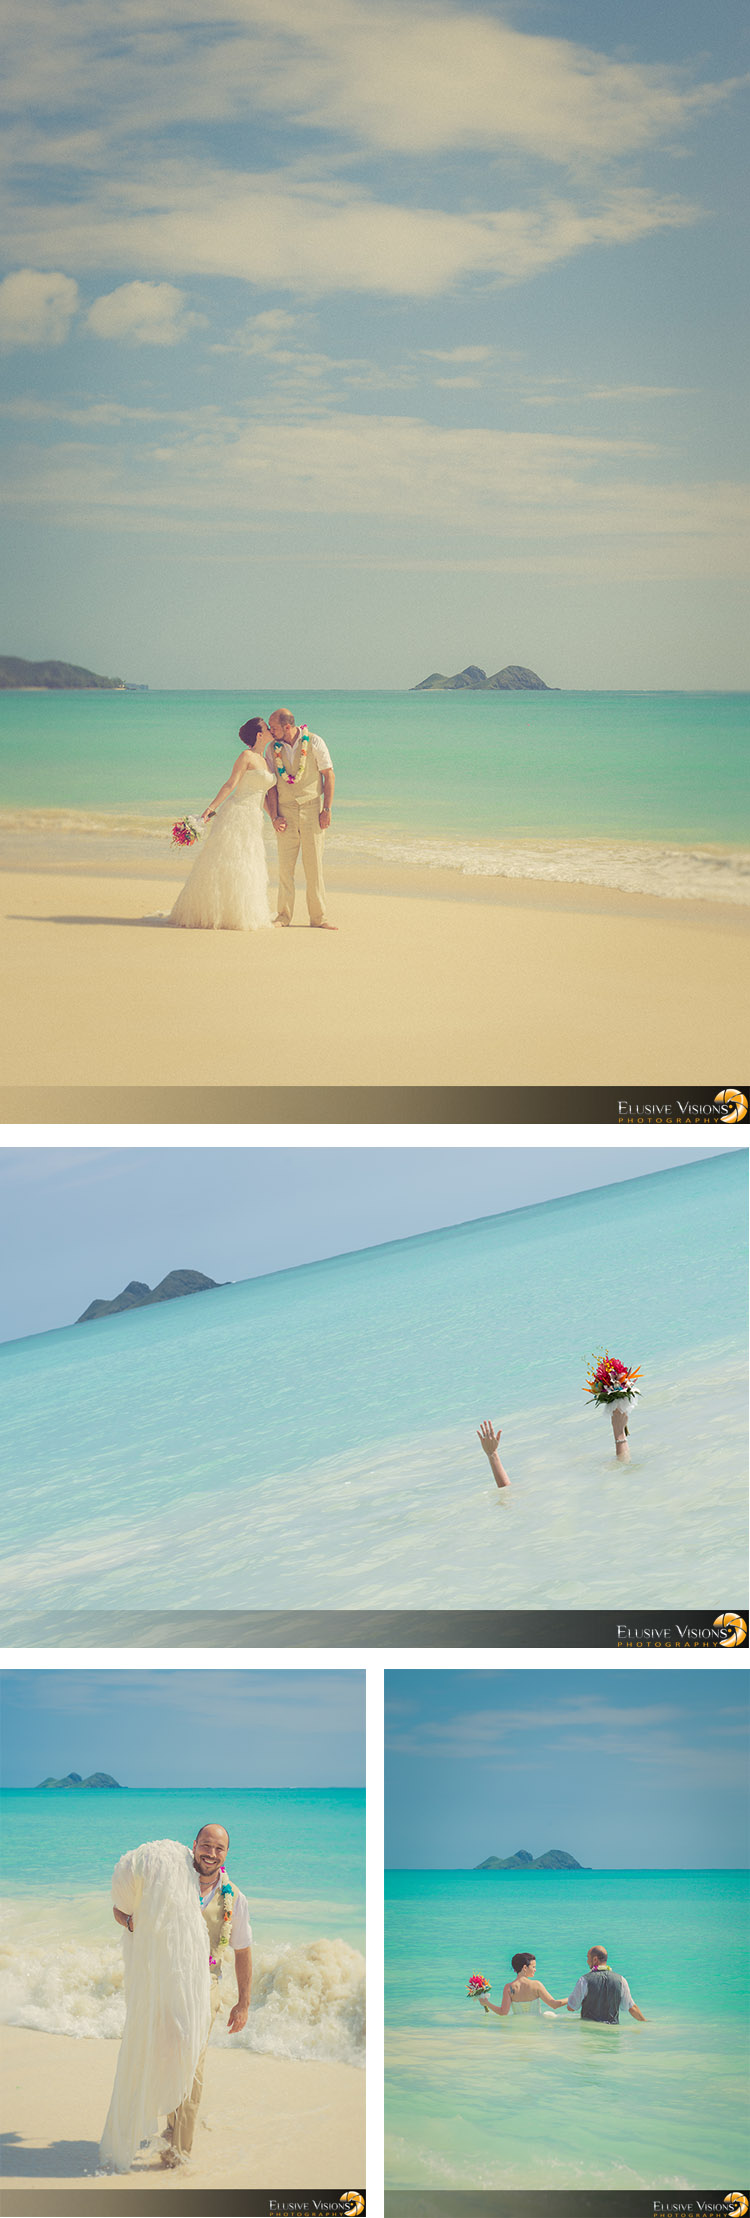 Hawaii Beach Wedding Photography by Elusive Visions3